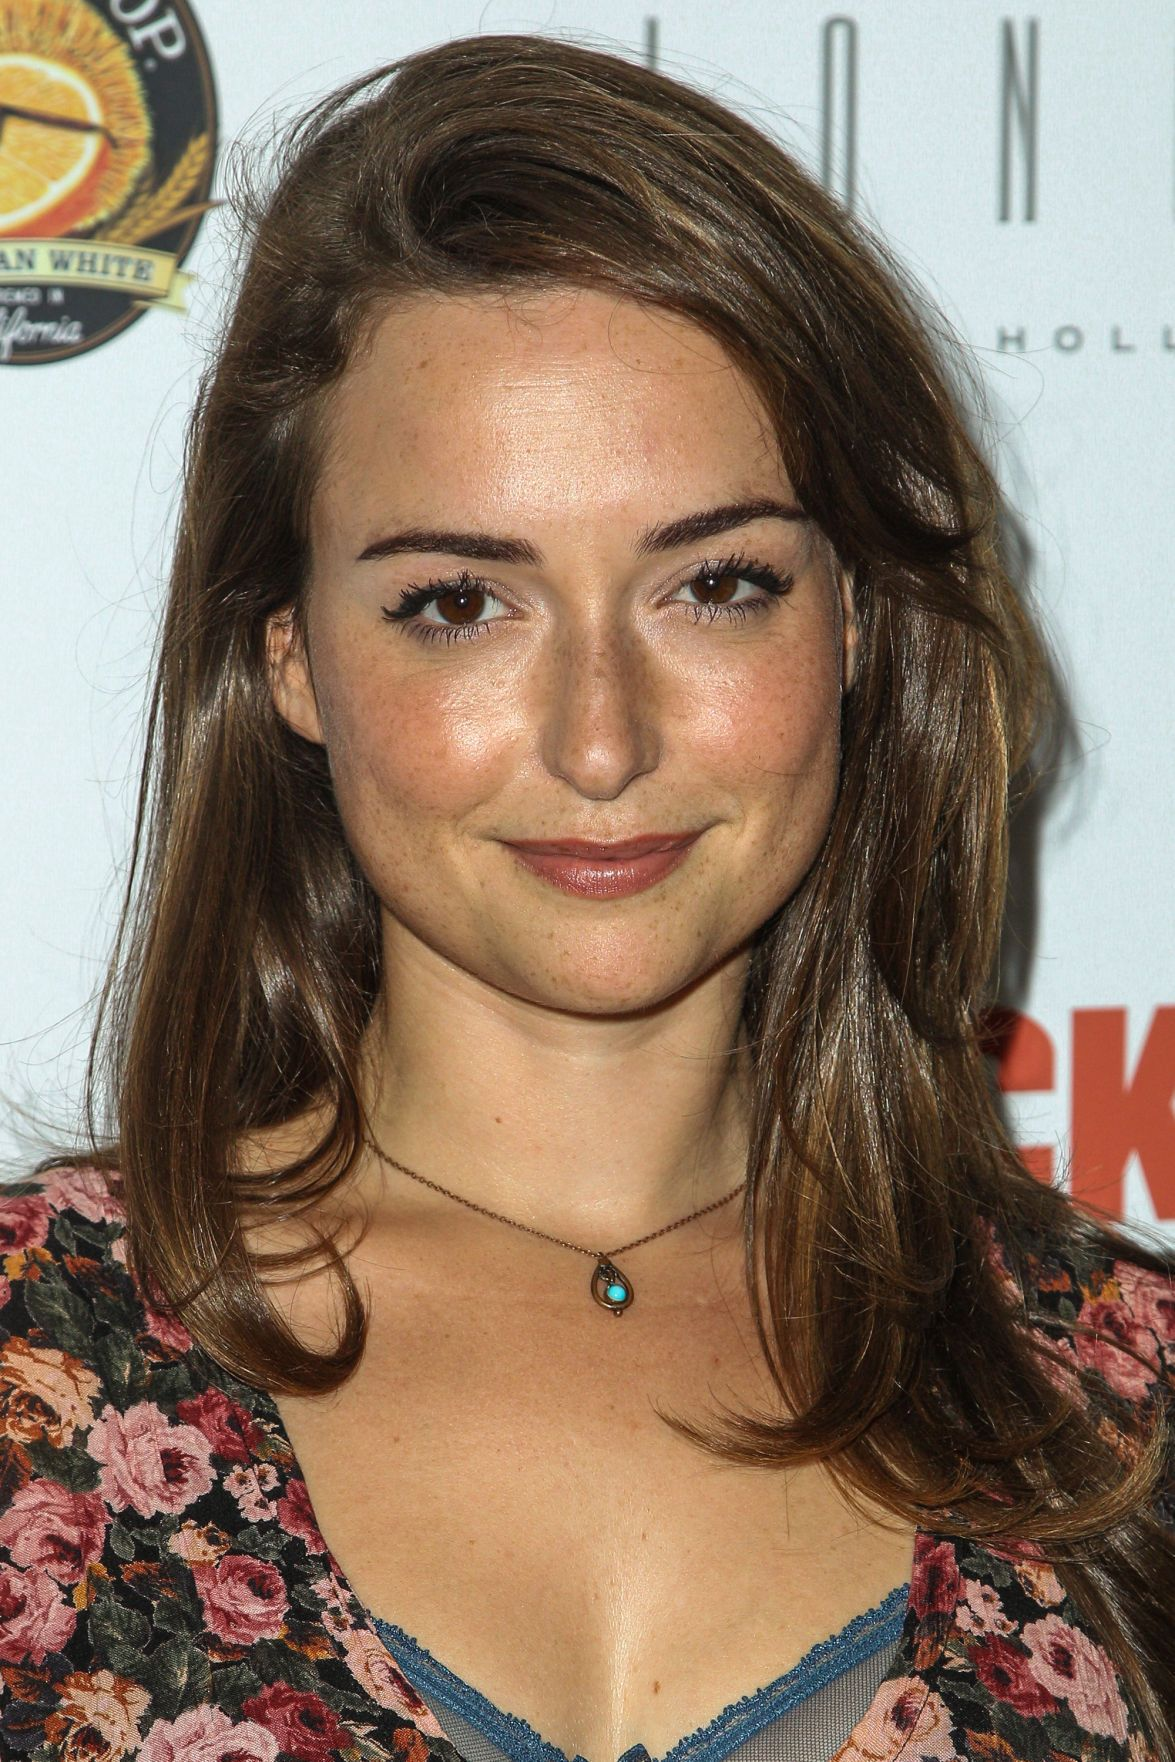 Milana Vayntrub very hot photo